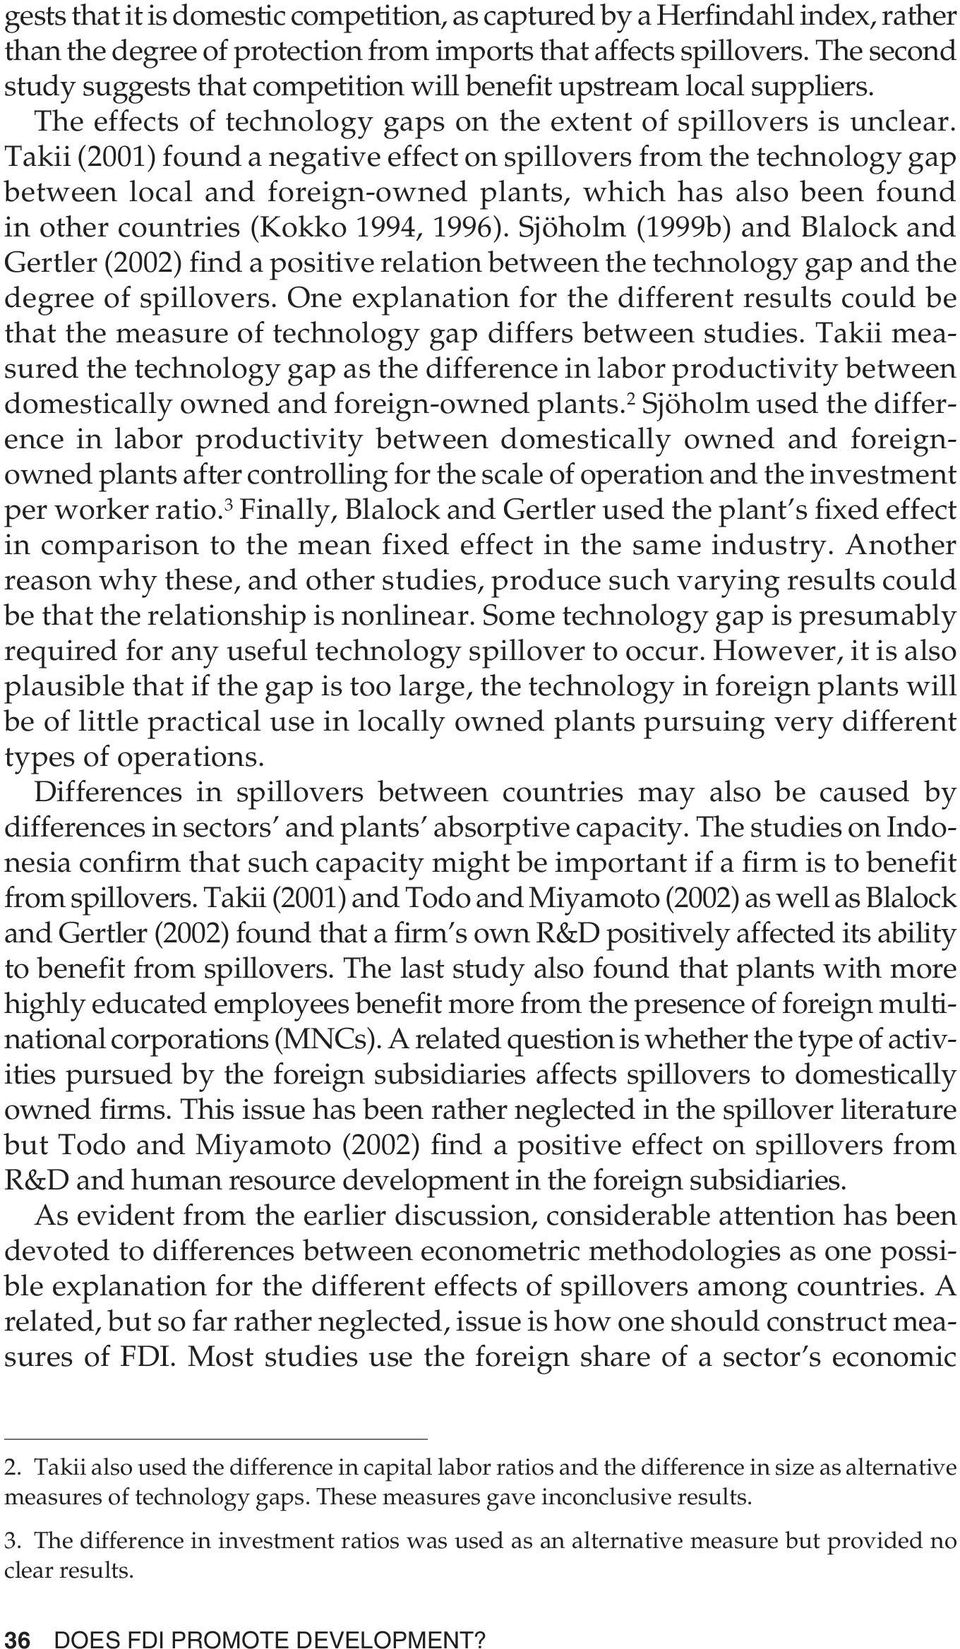 Takii (2001) found a negative effect on spillovers from the technology gap between local and foreign-owned plants, which has also been found in other countries (Kokko 1994, 1996).